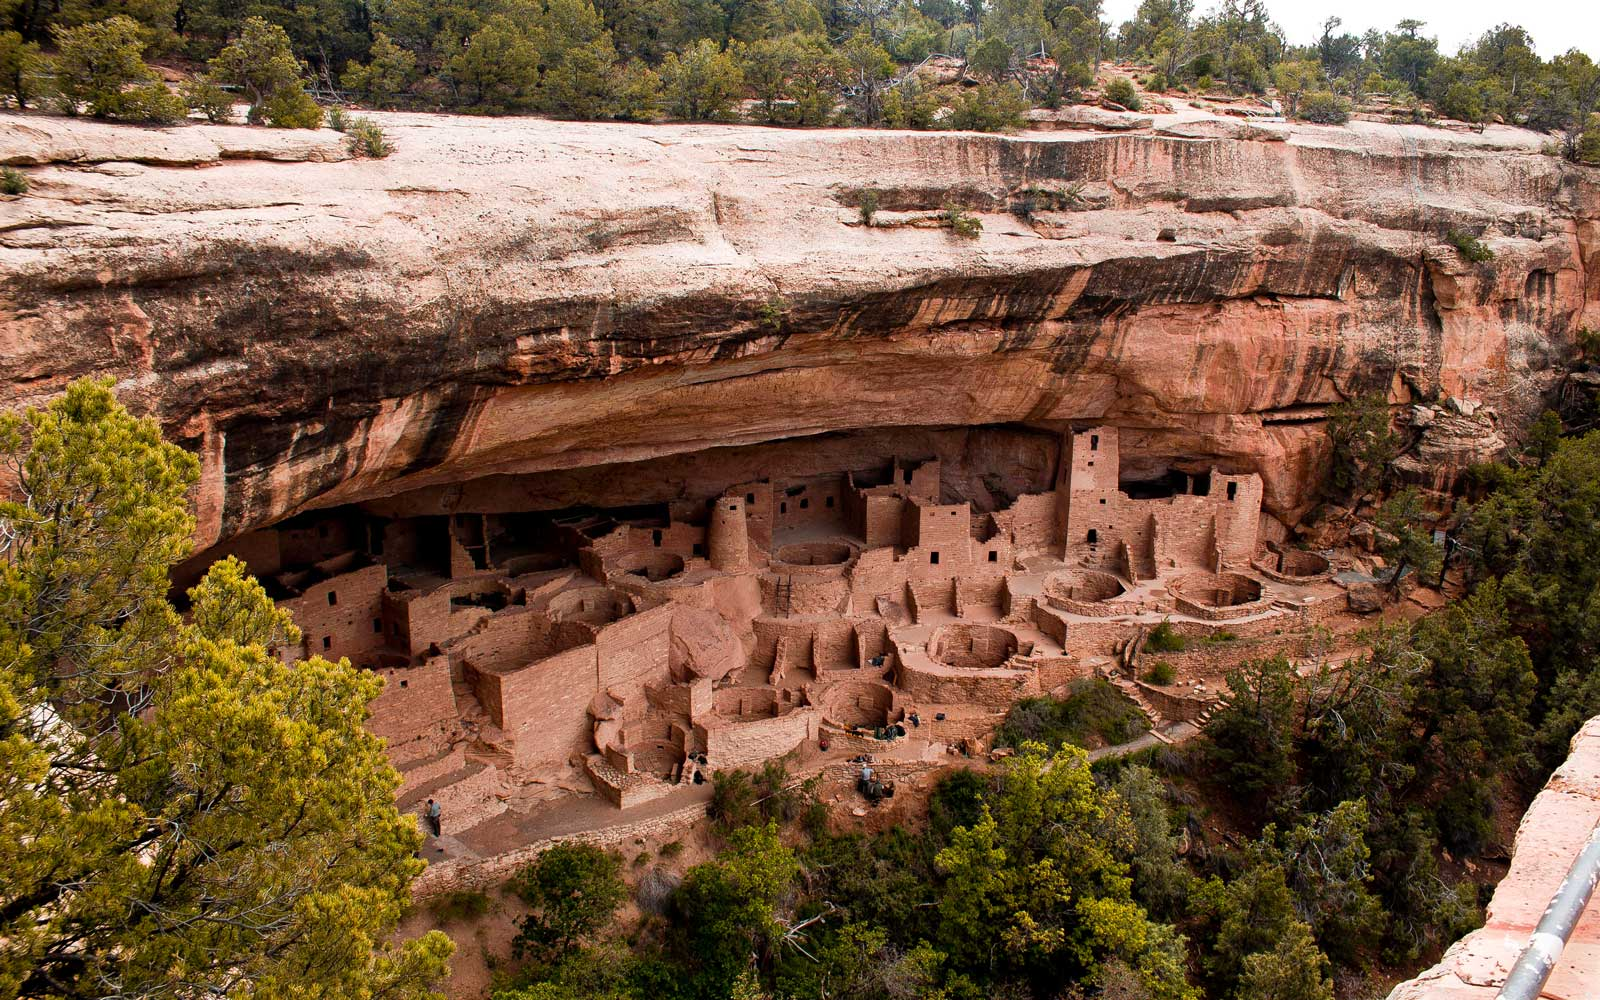 Tour the largest cliff dwelling in North America, Cliff Palace, at Mesa Verde National Park.